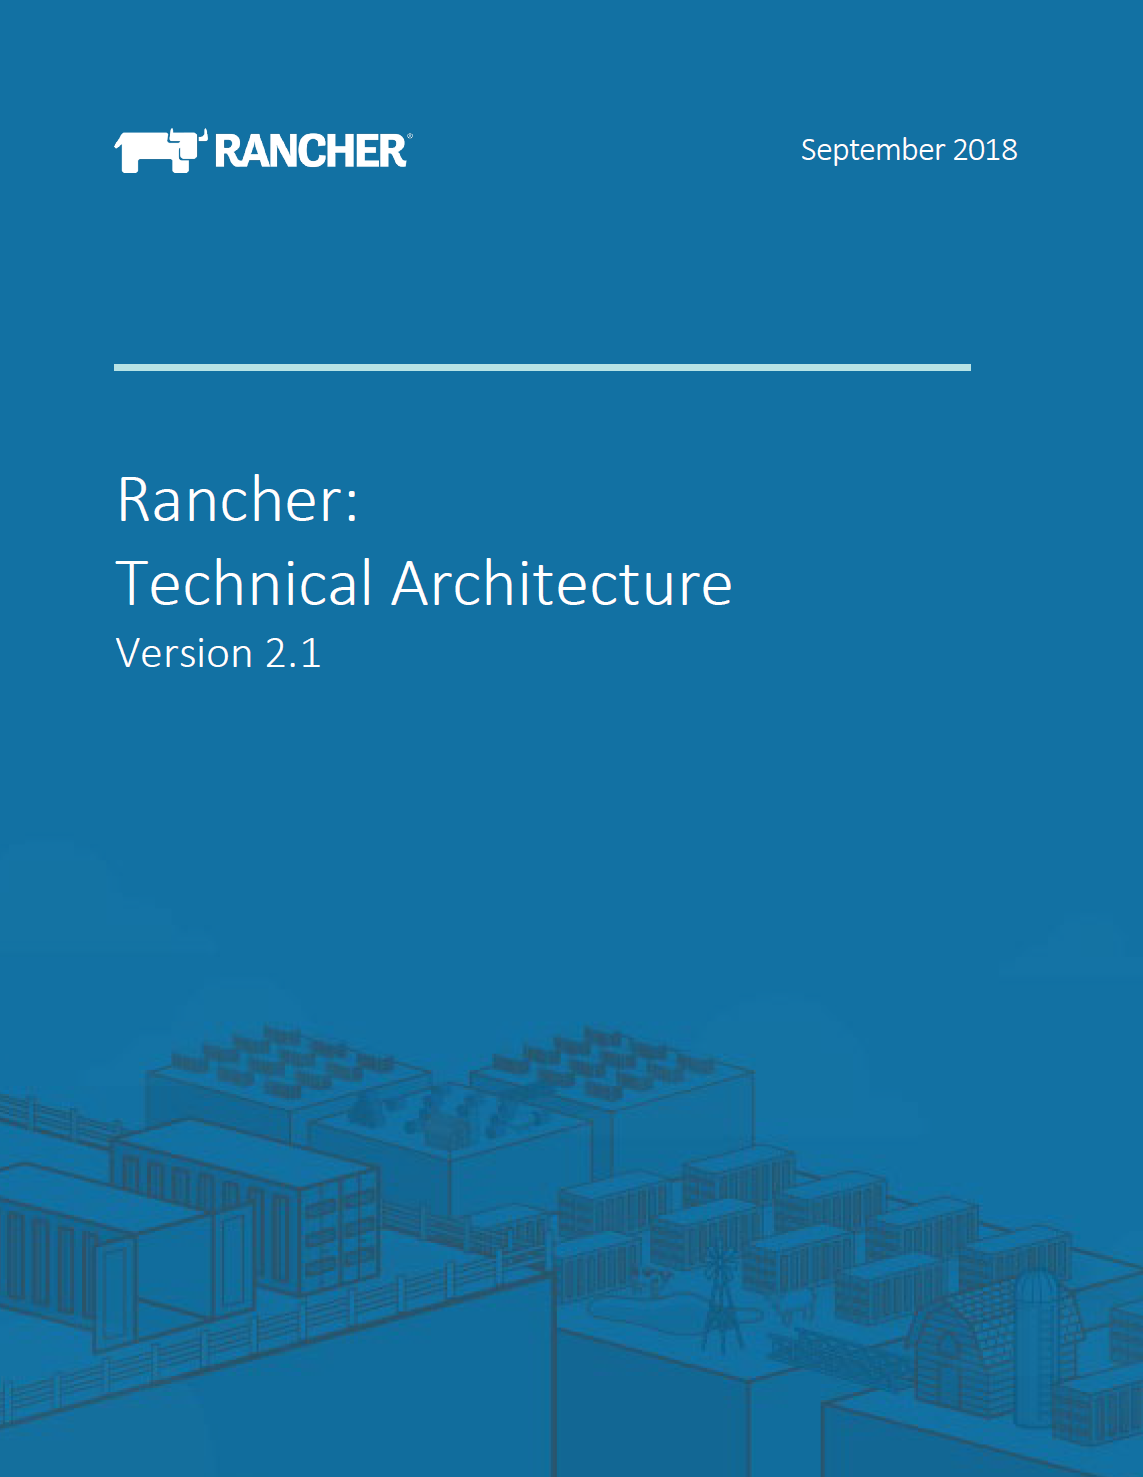 rancher-architecture-v2-1-whitepaper-cover.png